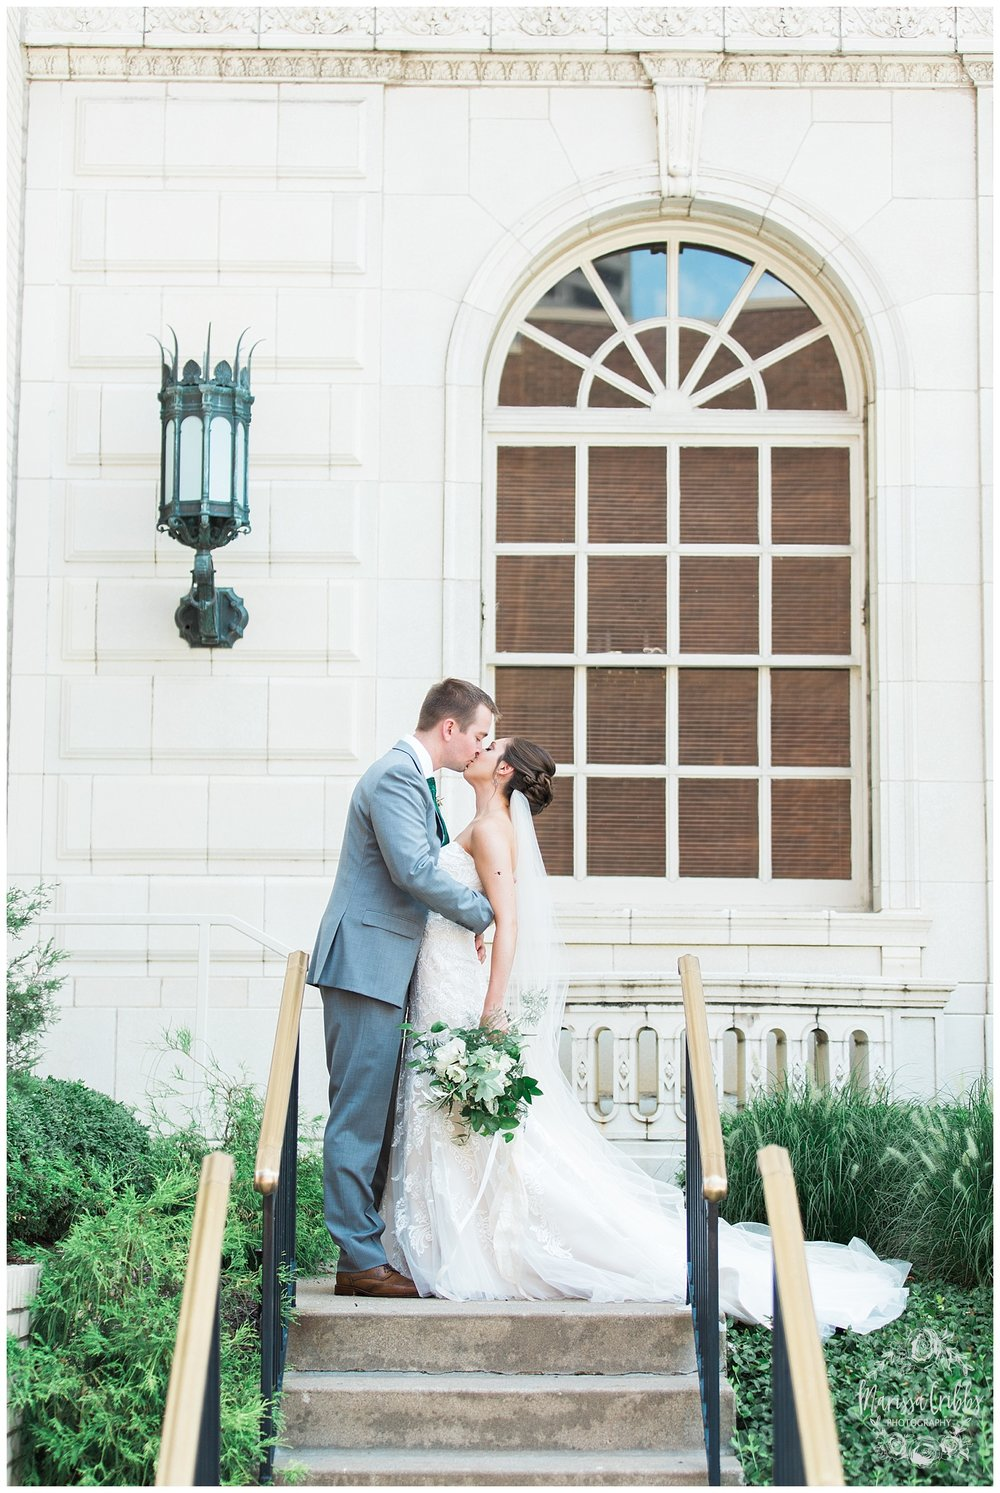 FEASTS OF FANCY KC WEDDING | THE HOBBS WEDDING KANSAS CITY | MARISSA CRIBBS PHOTOGRAPHY_2193.jpg